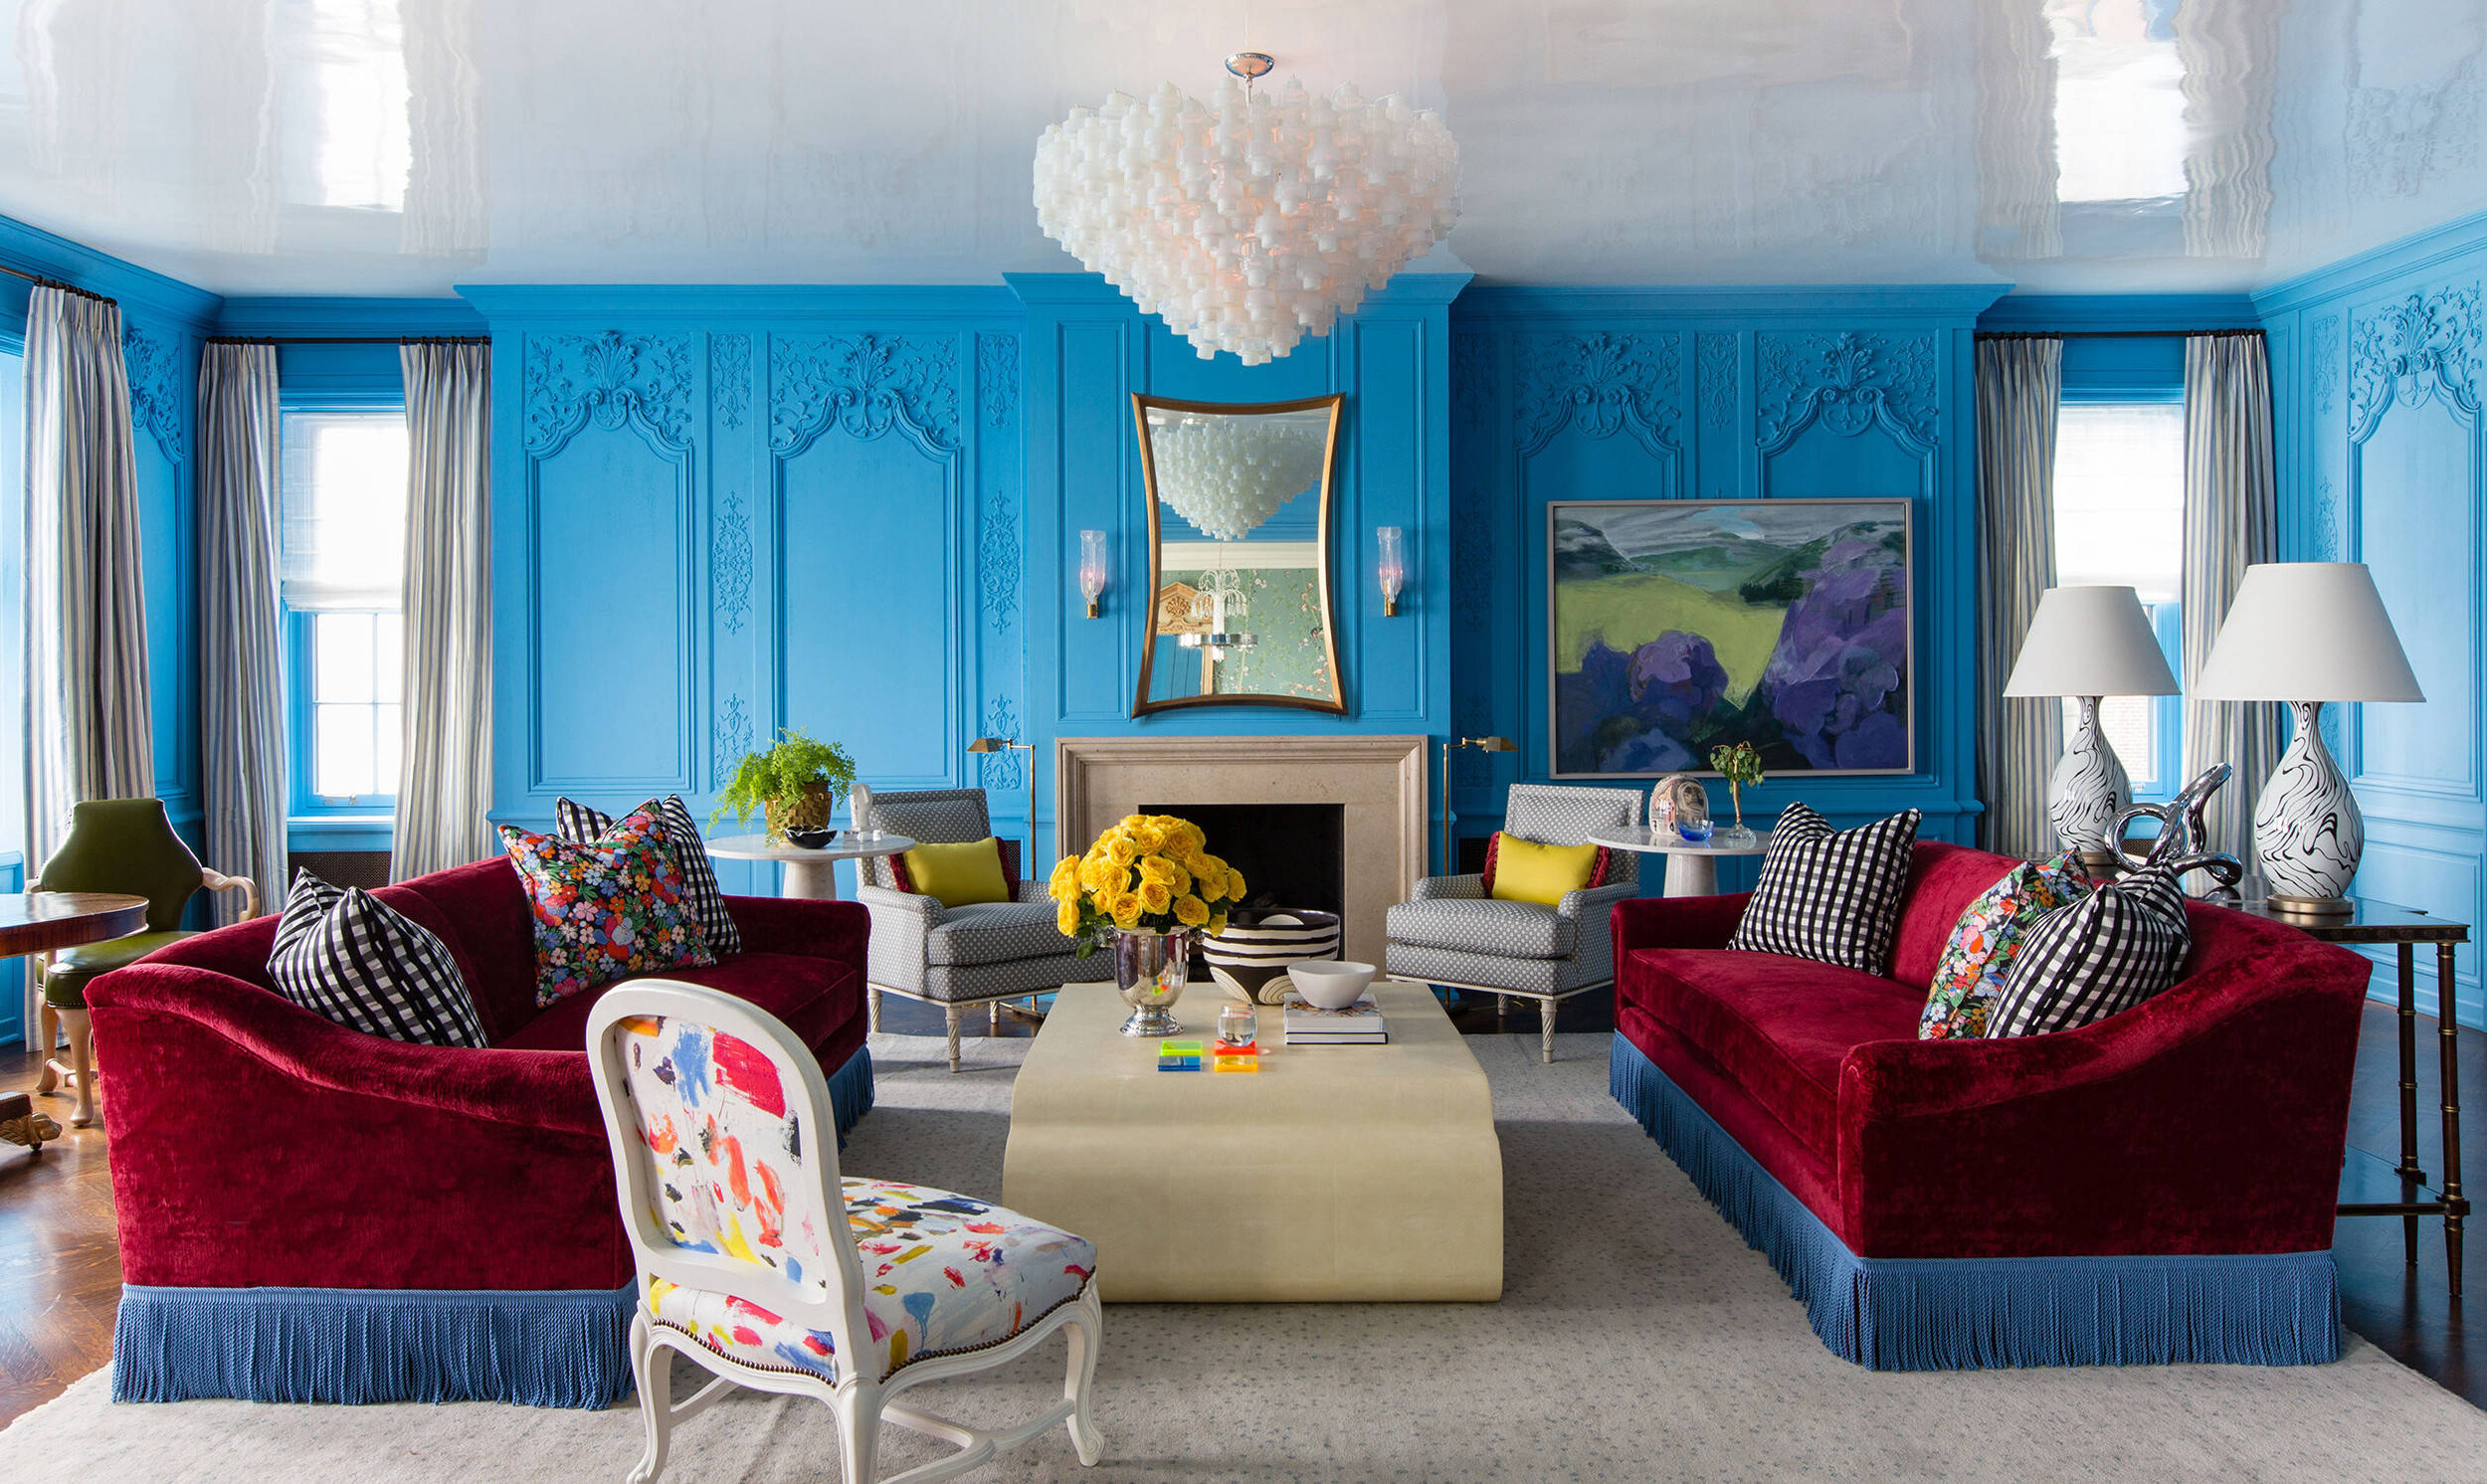 A Crash Course In Color Theory And Interior Design The Delight Of Design